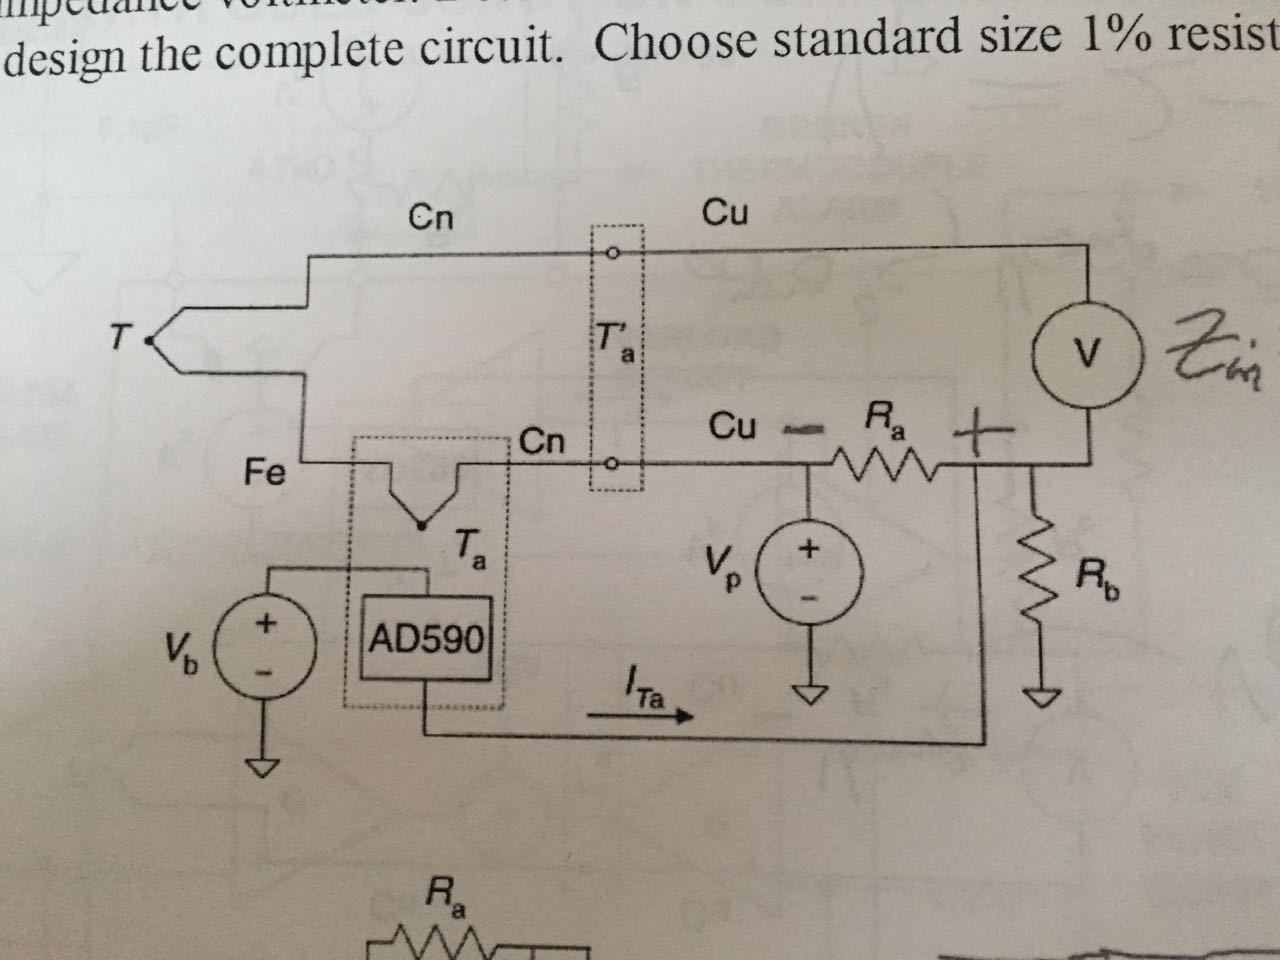 The Figure Below Shows A Cold Junction Compensatio Thermocouple Circuit Determine Condition To Be Fulfilled By Vb Vpra And Rb Design Complete Choose Standard Size 1 Resistors For Your Solution